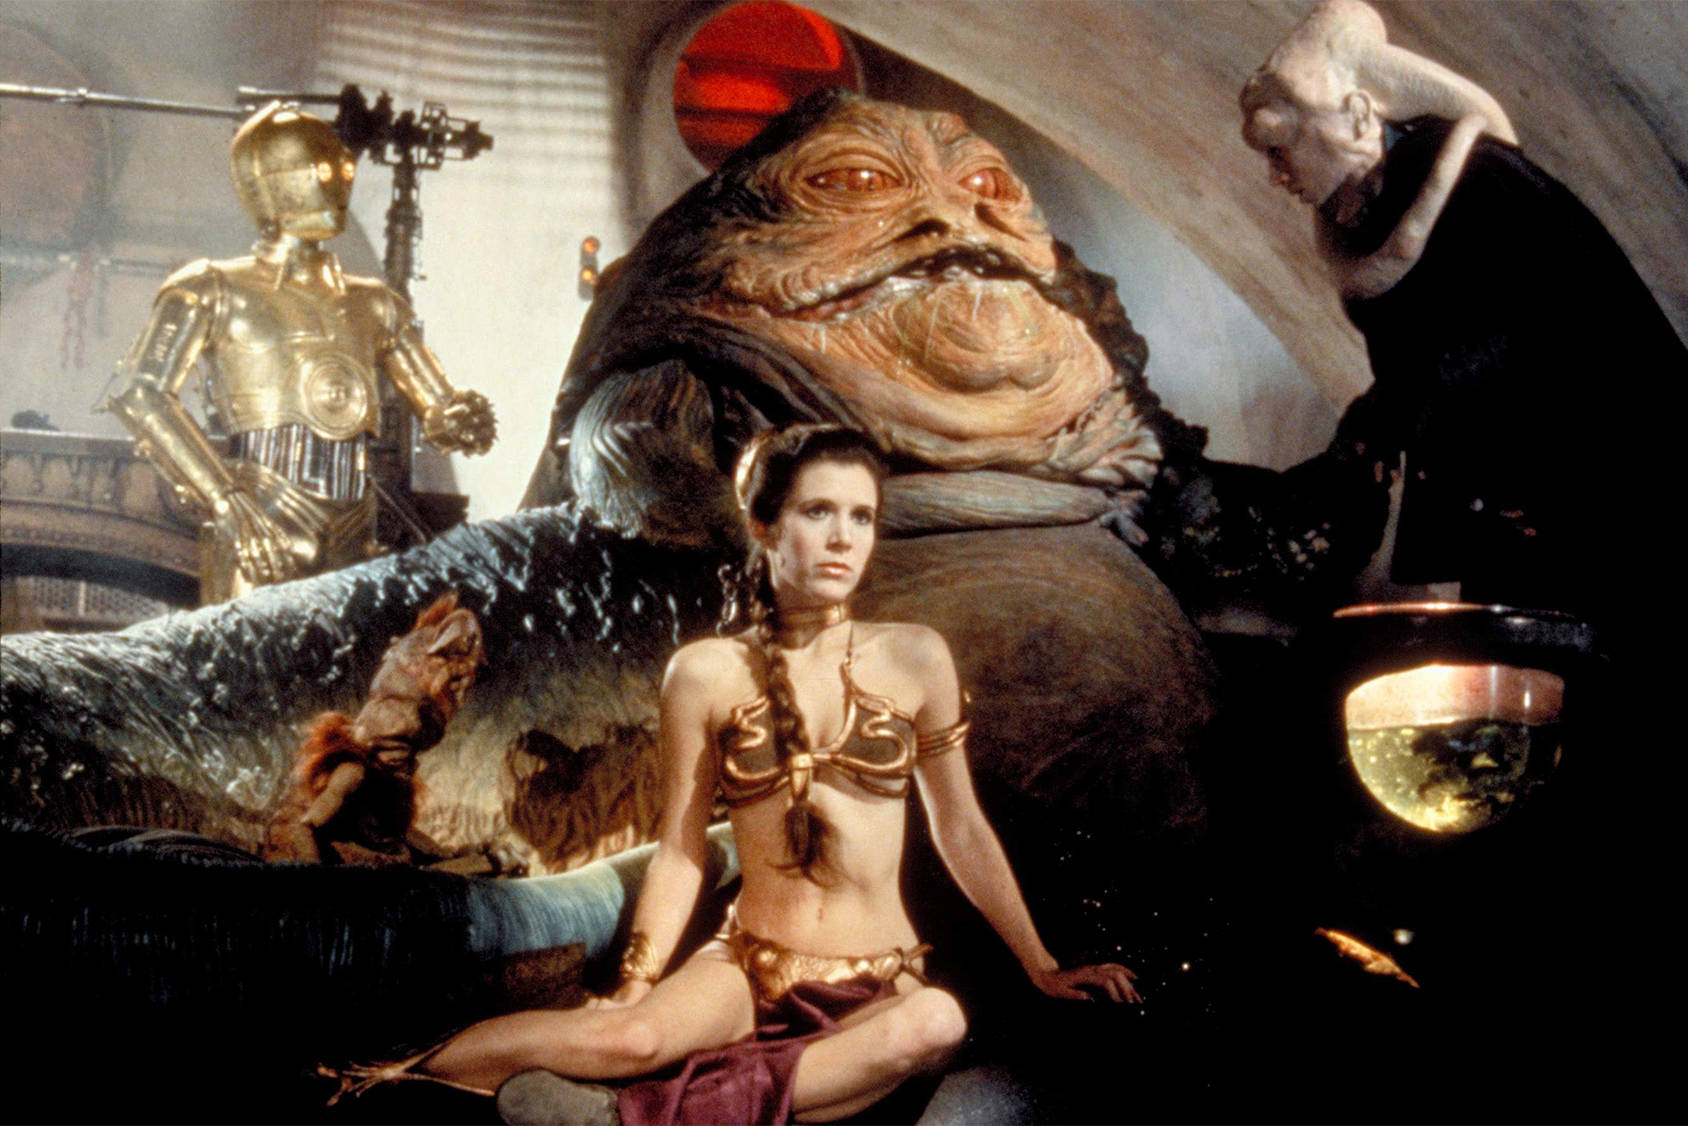 Princess Leia in her copper bikini från Return of the Jedi, All Over Press.